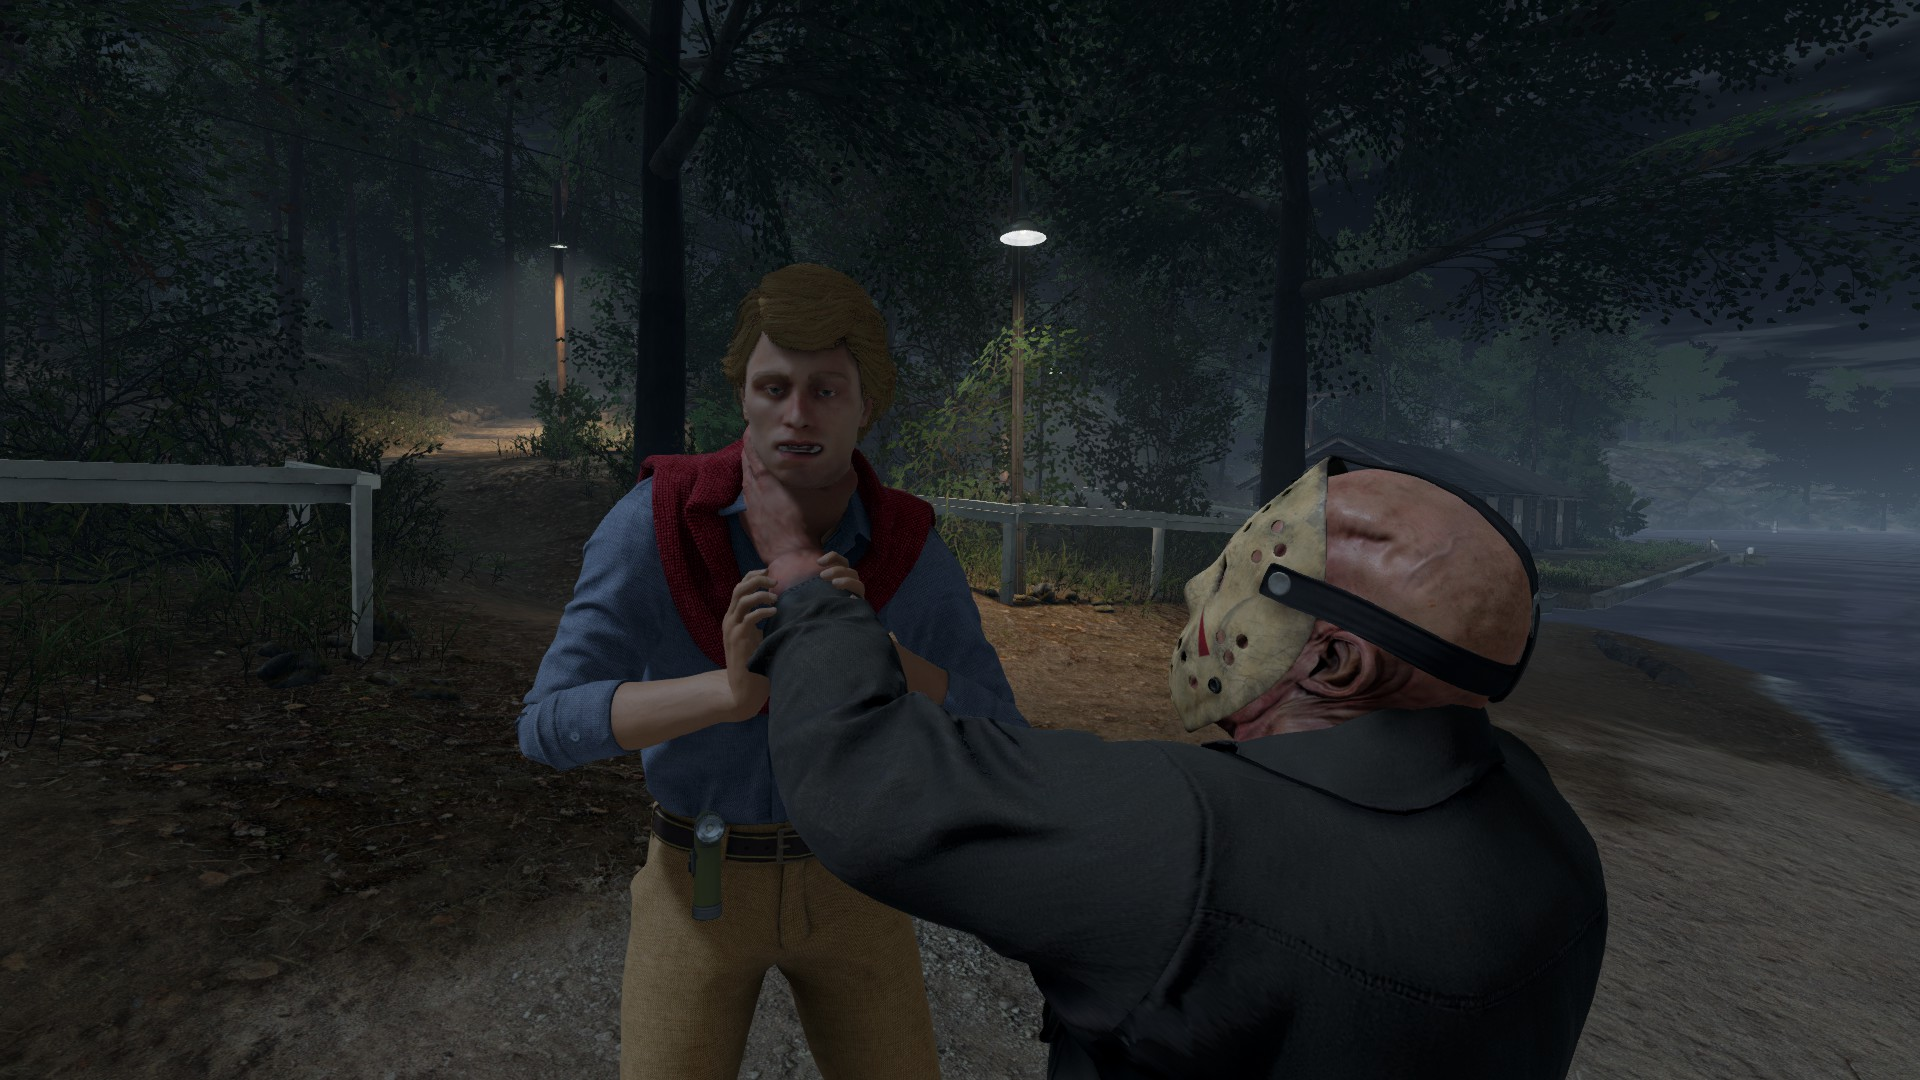 Jason's Grip Ability lets him hold onto Counselors. If Jason's stats include a Grip Strength, your prey won't be able to wriggle free easily!